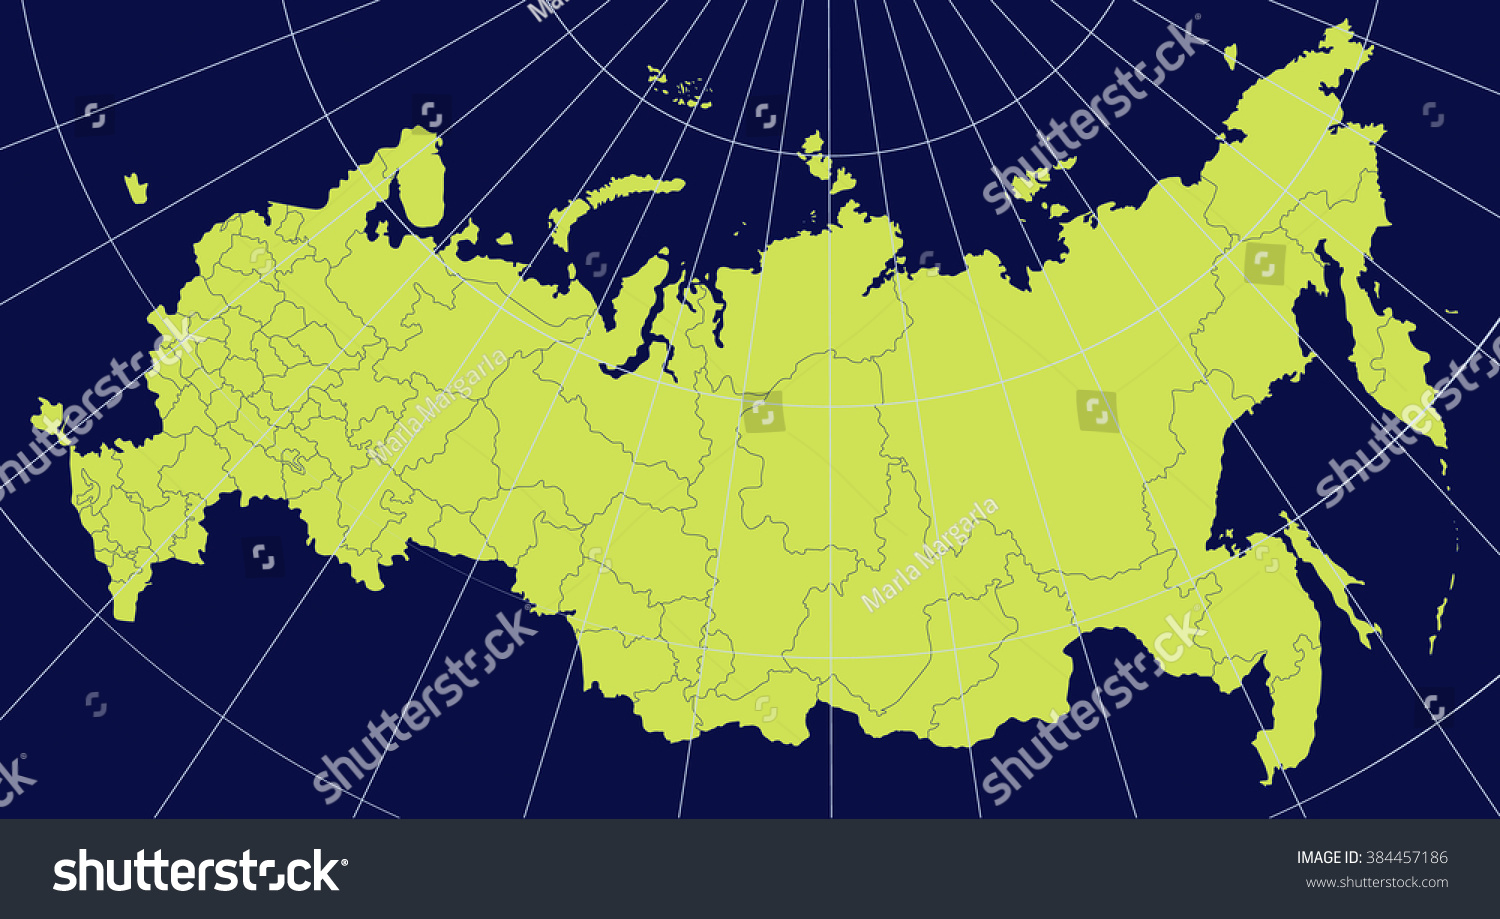 Detailed Map Russia Regions Stock Vector Shutterstock - Detailed map of russia